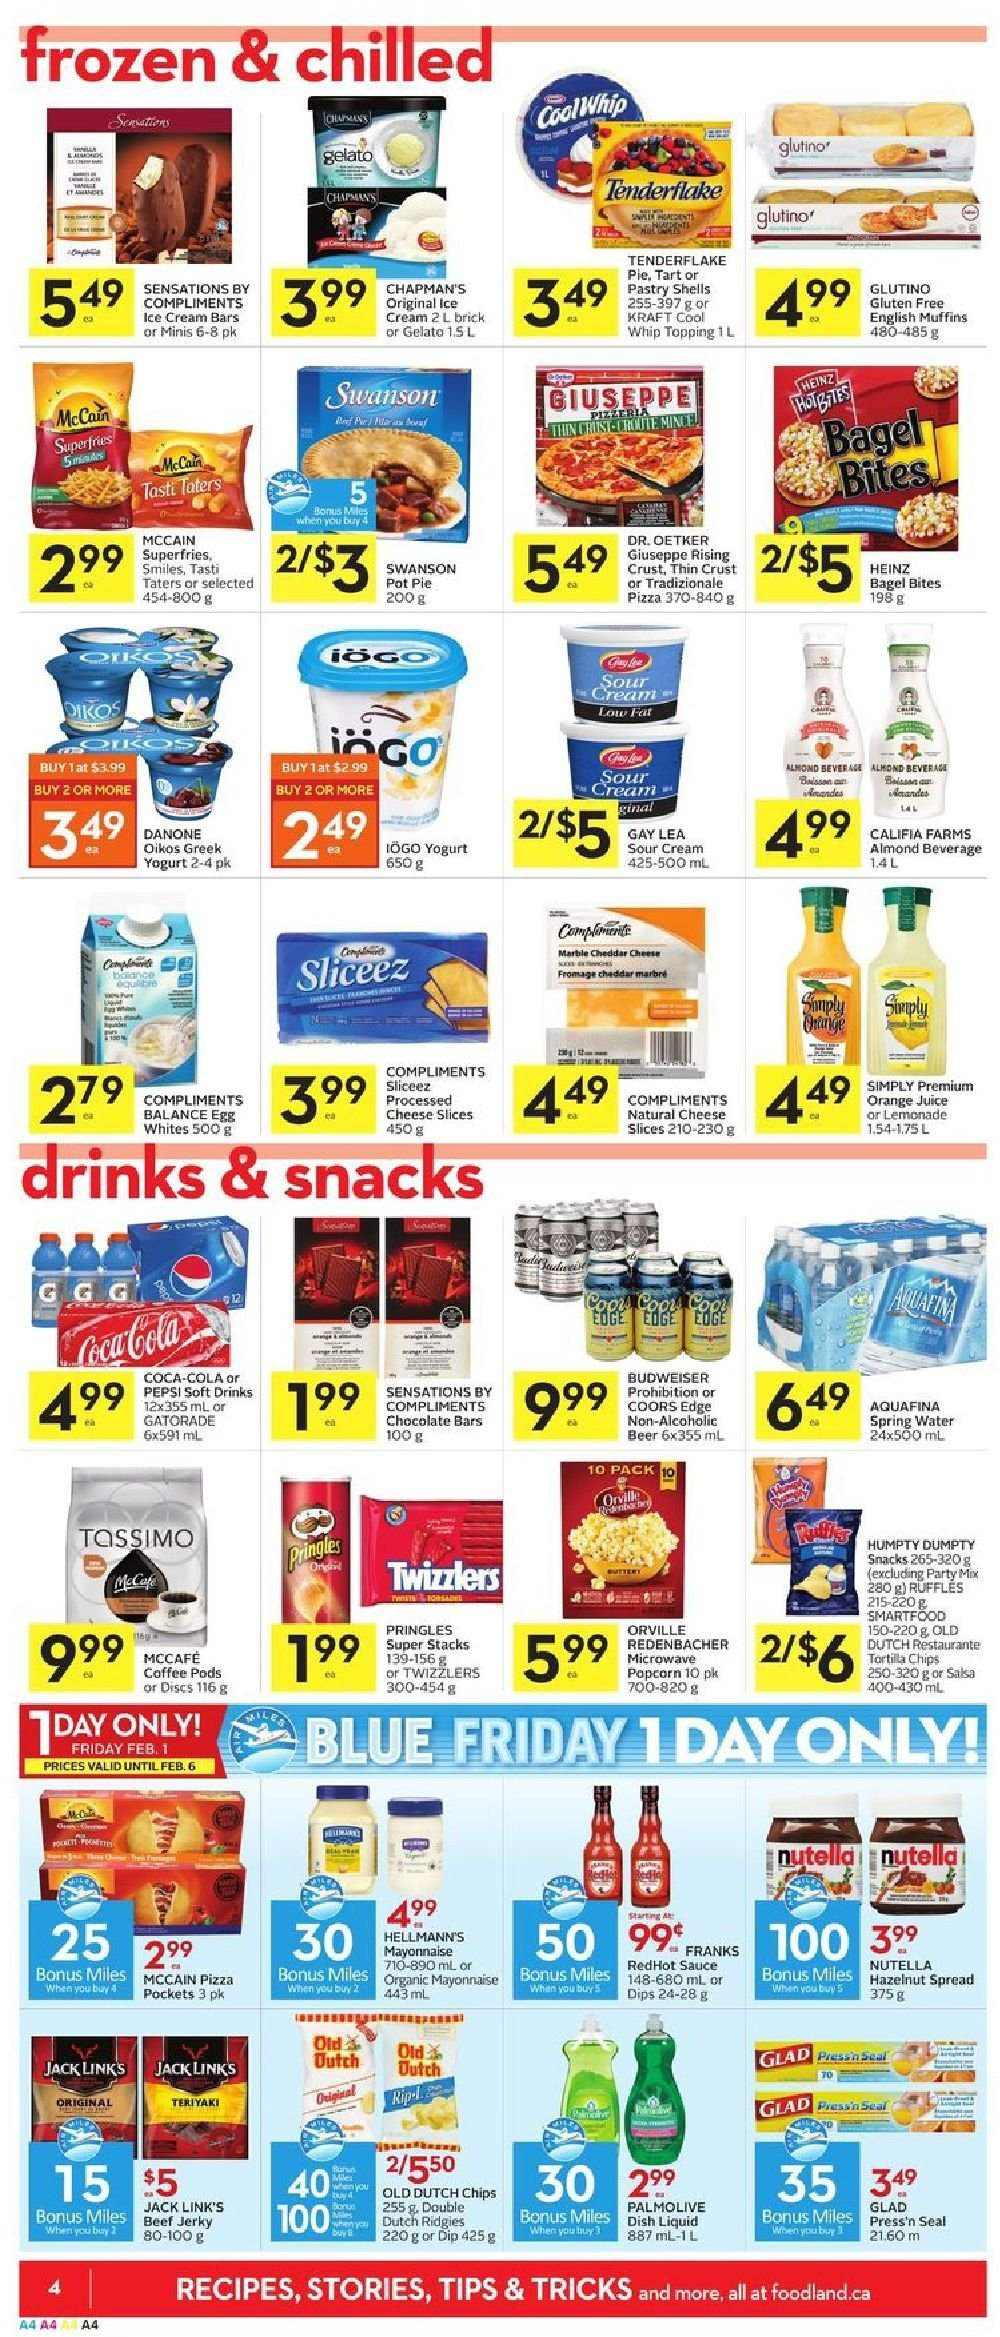 Foodland Flyer  - January 31, 2019 - February 06, 2019. Page 4.